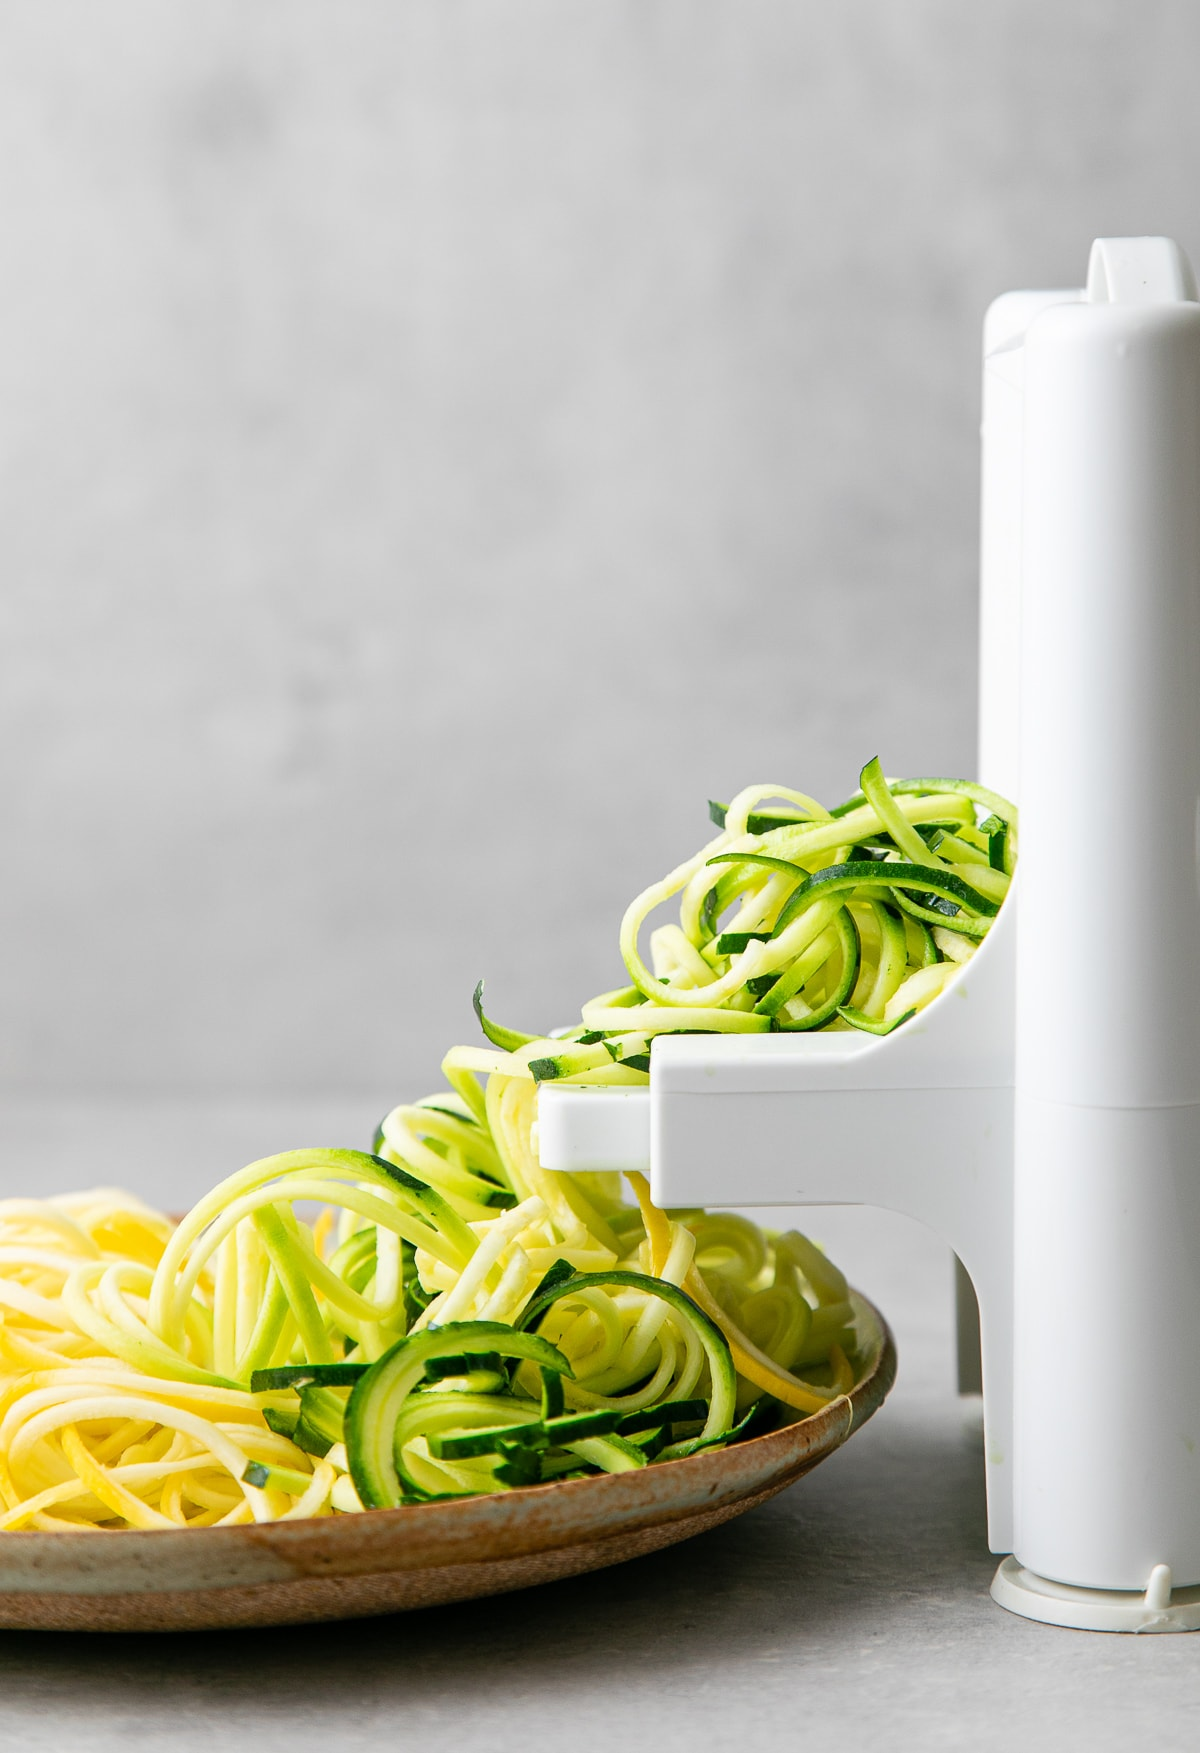 head on view of showing the process of making raw zucchini noodles.